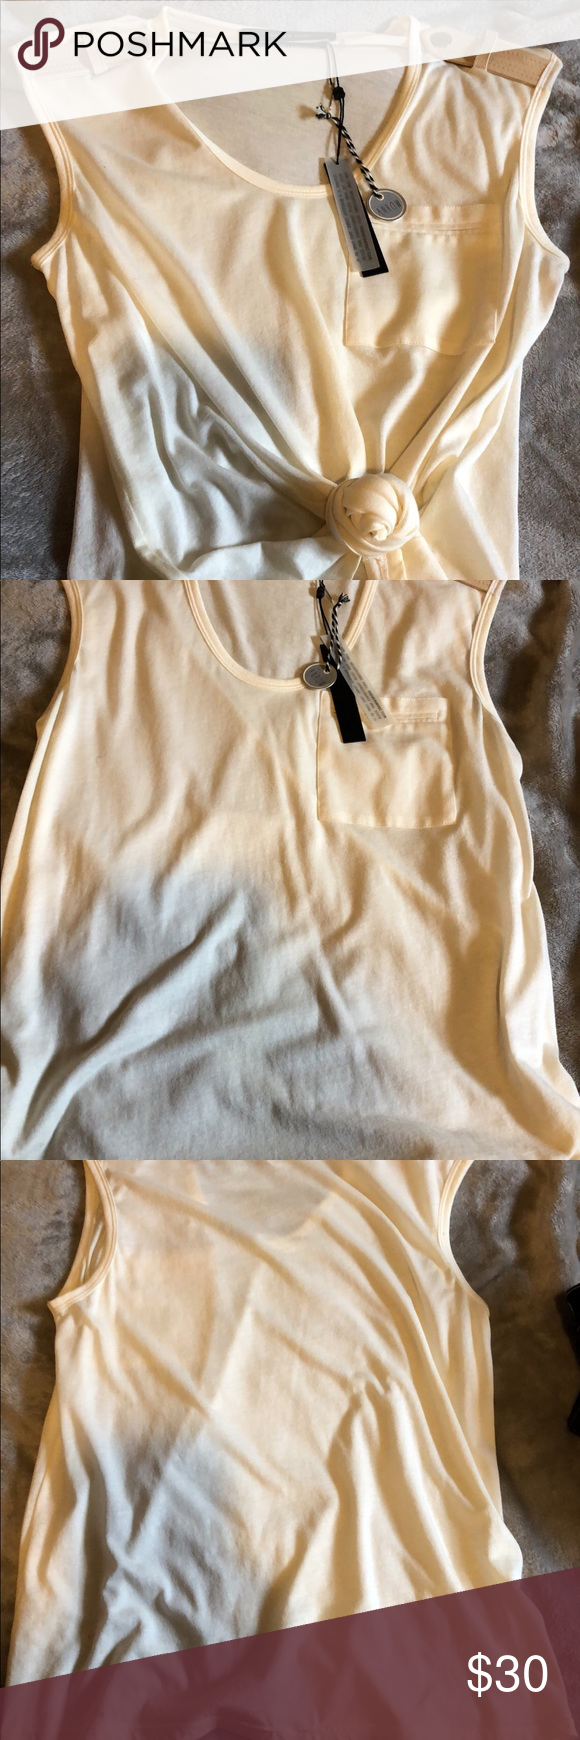 Andrew Marc Sleeveless Shirt/ Leather straps Really cute Andrew Marc sleeveless cream colored shirt with leather shoulder straps! I bought it from a boutique here in town and just haven't worn it as creams and whites aren't usually my colors🤭 It's a shame it's just sitting in my closet! As I was taking the pictures I noticed a couple tiny spots on the left side hem area, and being that they weren't there before, and I've never worn the shirt, I'm thinking they'll probably come out in the…